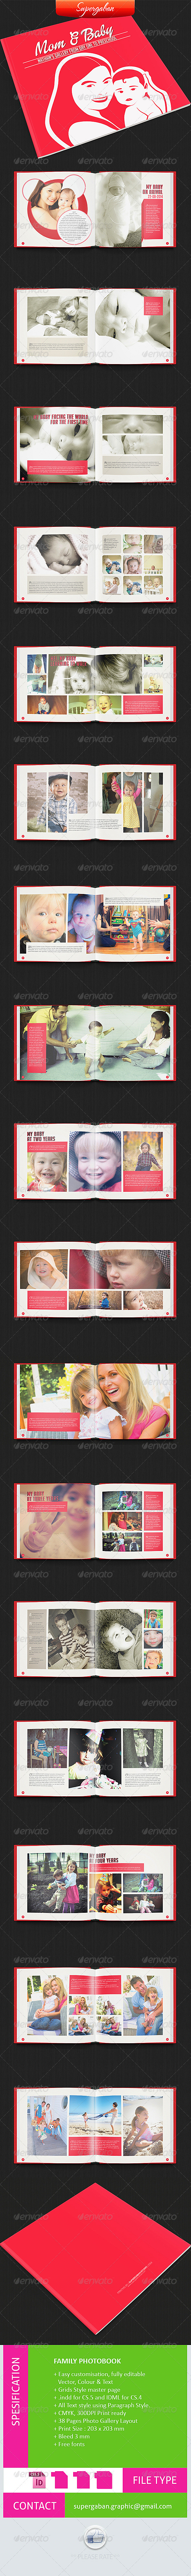 GraphicRiver Family Album 7299483